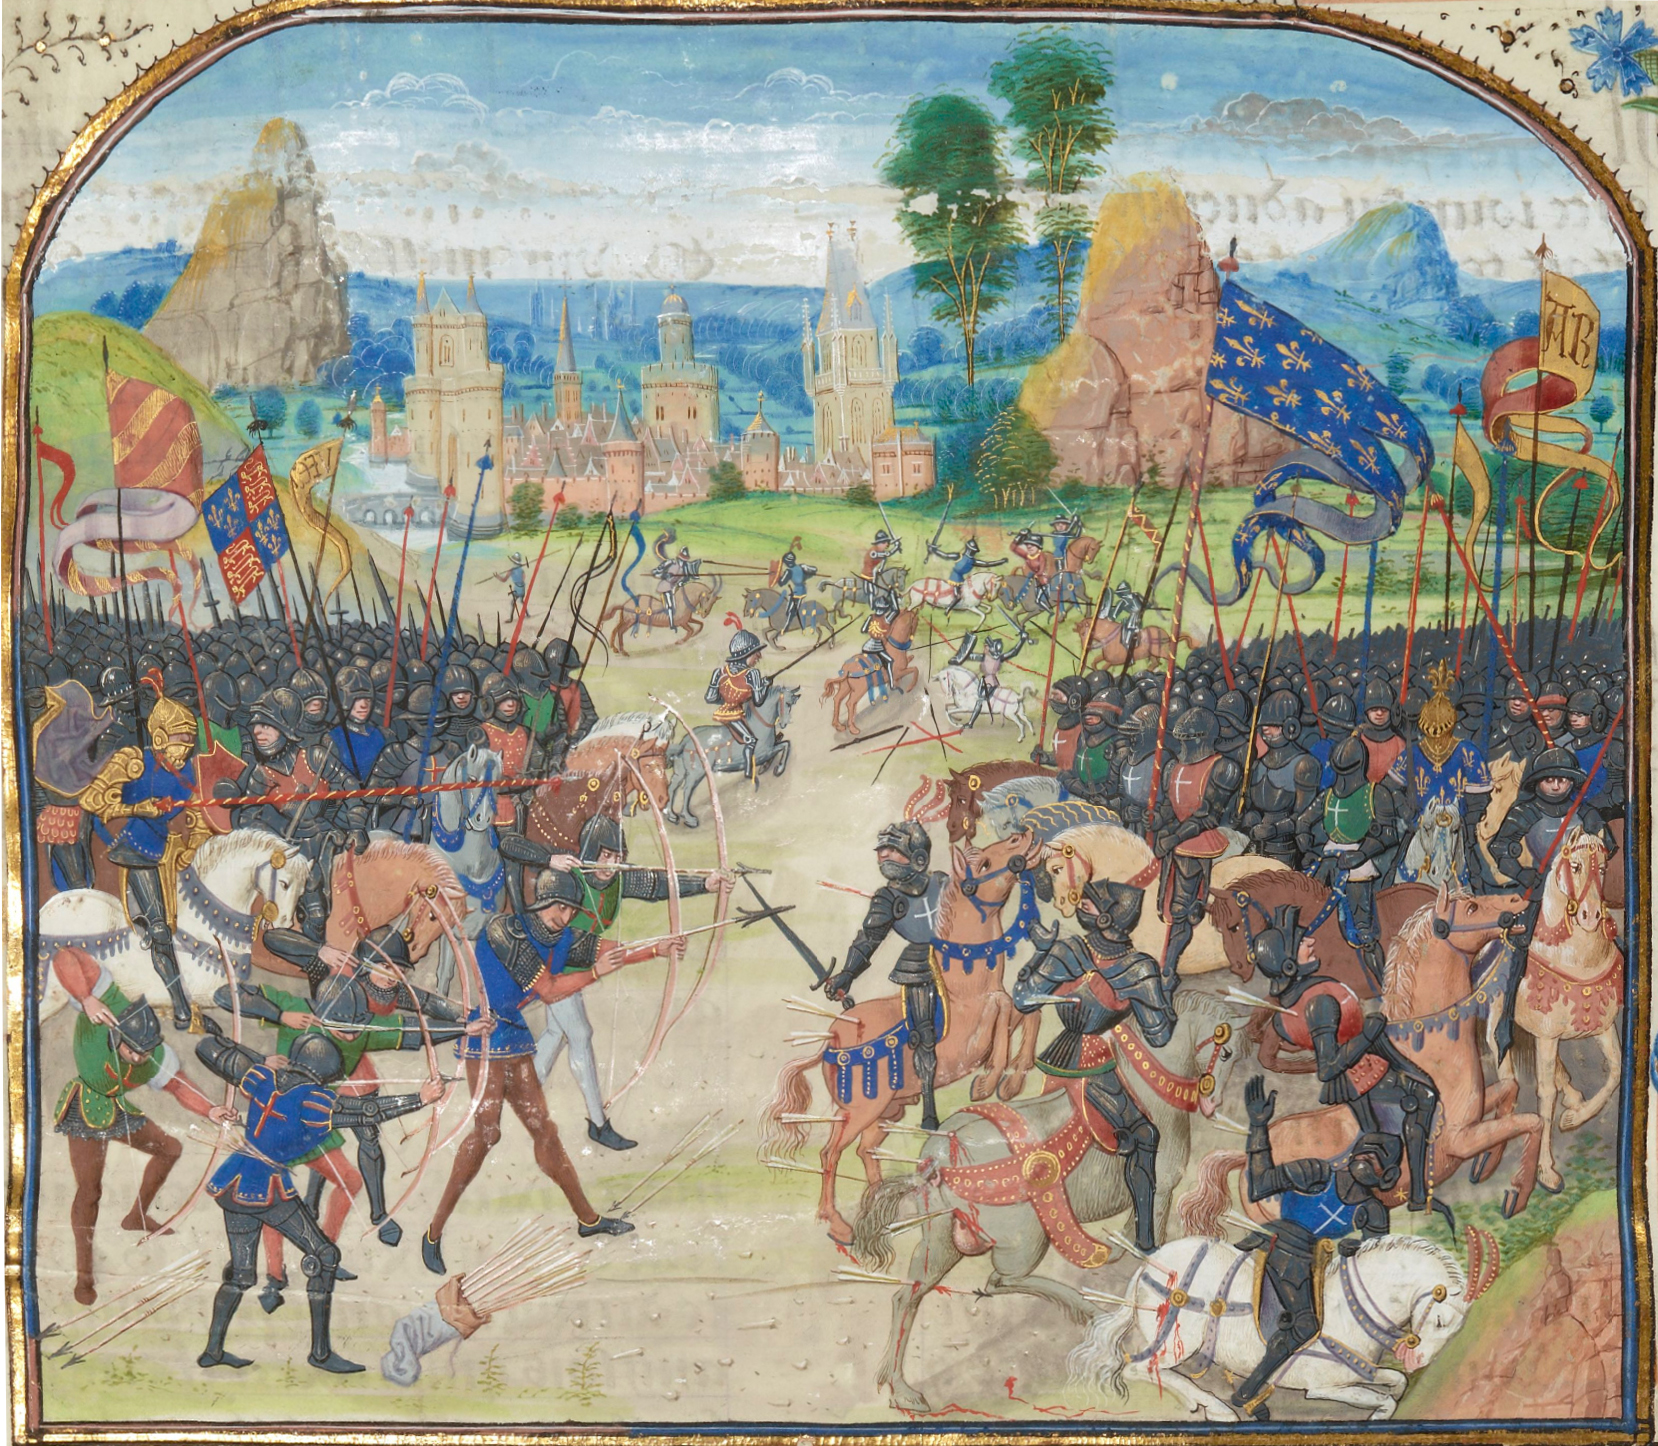 Archivo:Battle-poitiers(1356).jpg